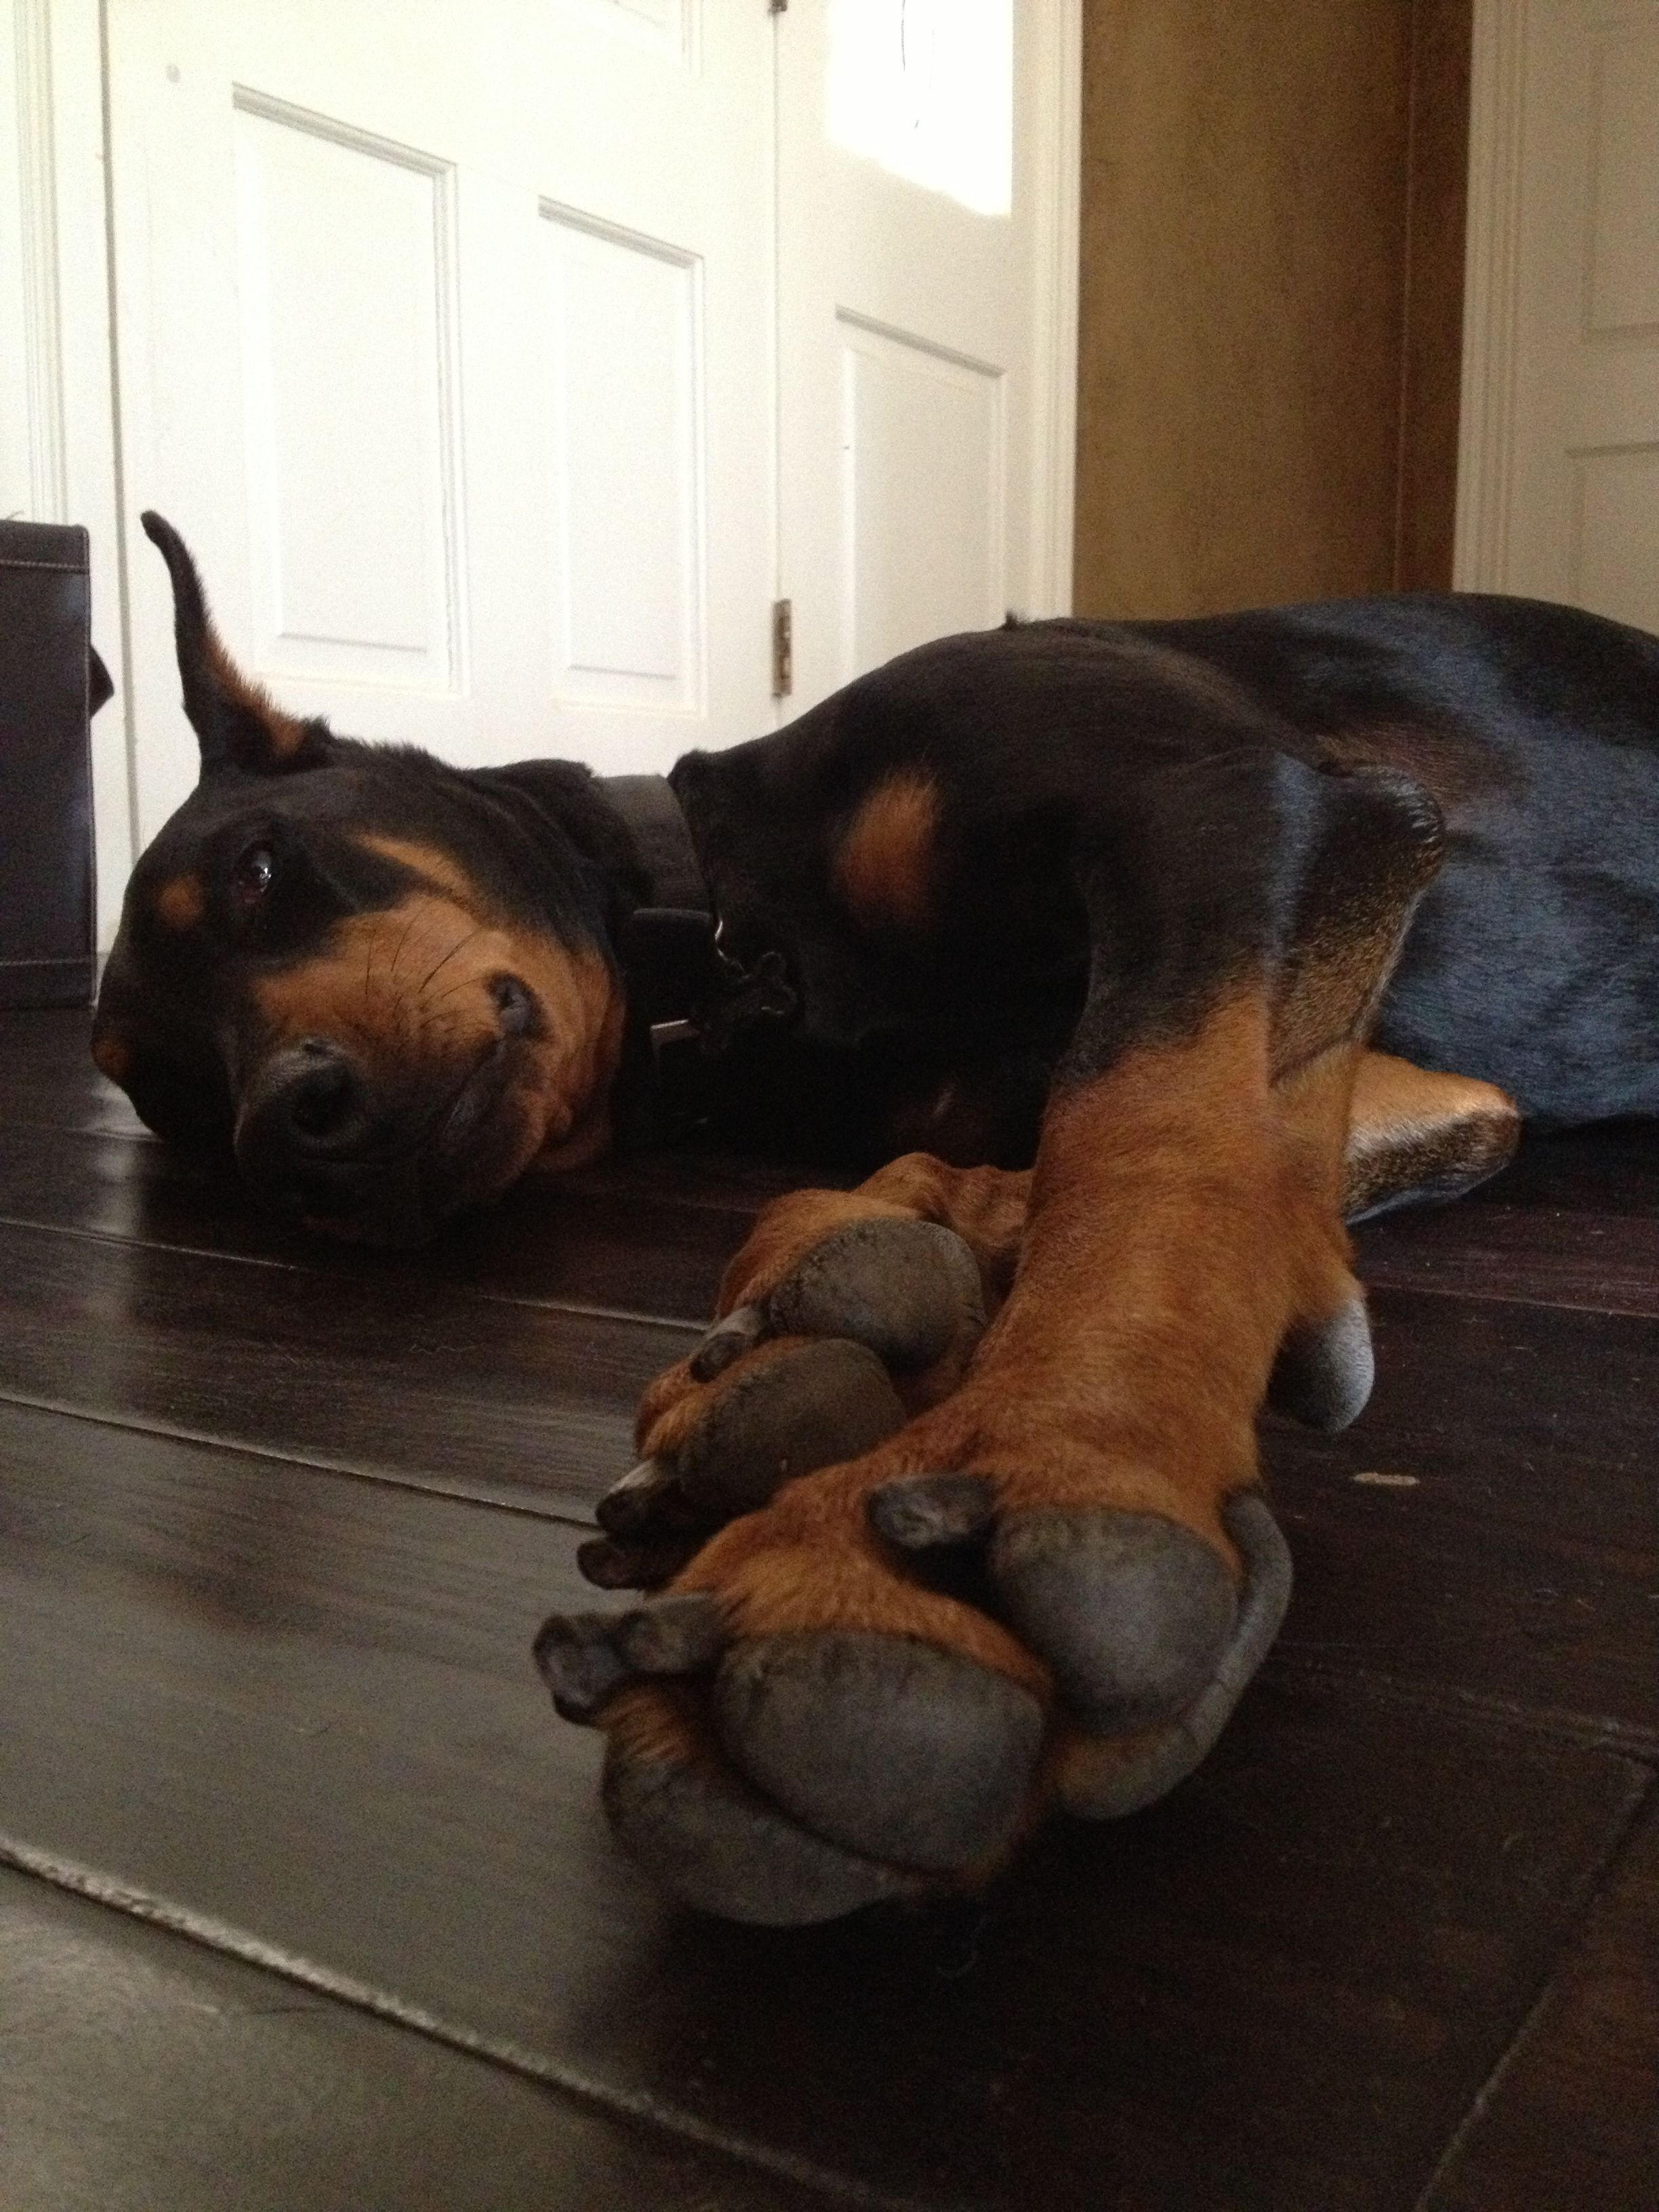 Tired Doberman. Looks exactly like my little girl after a